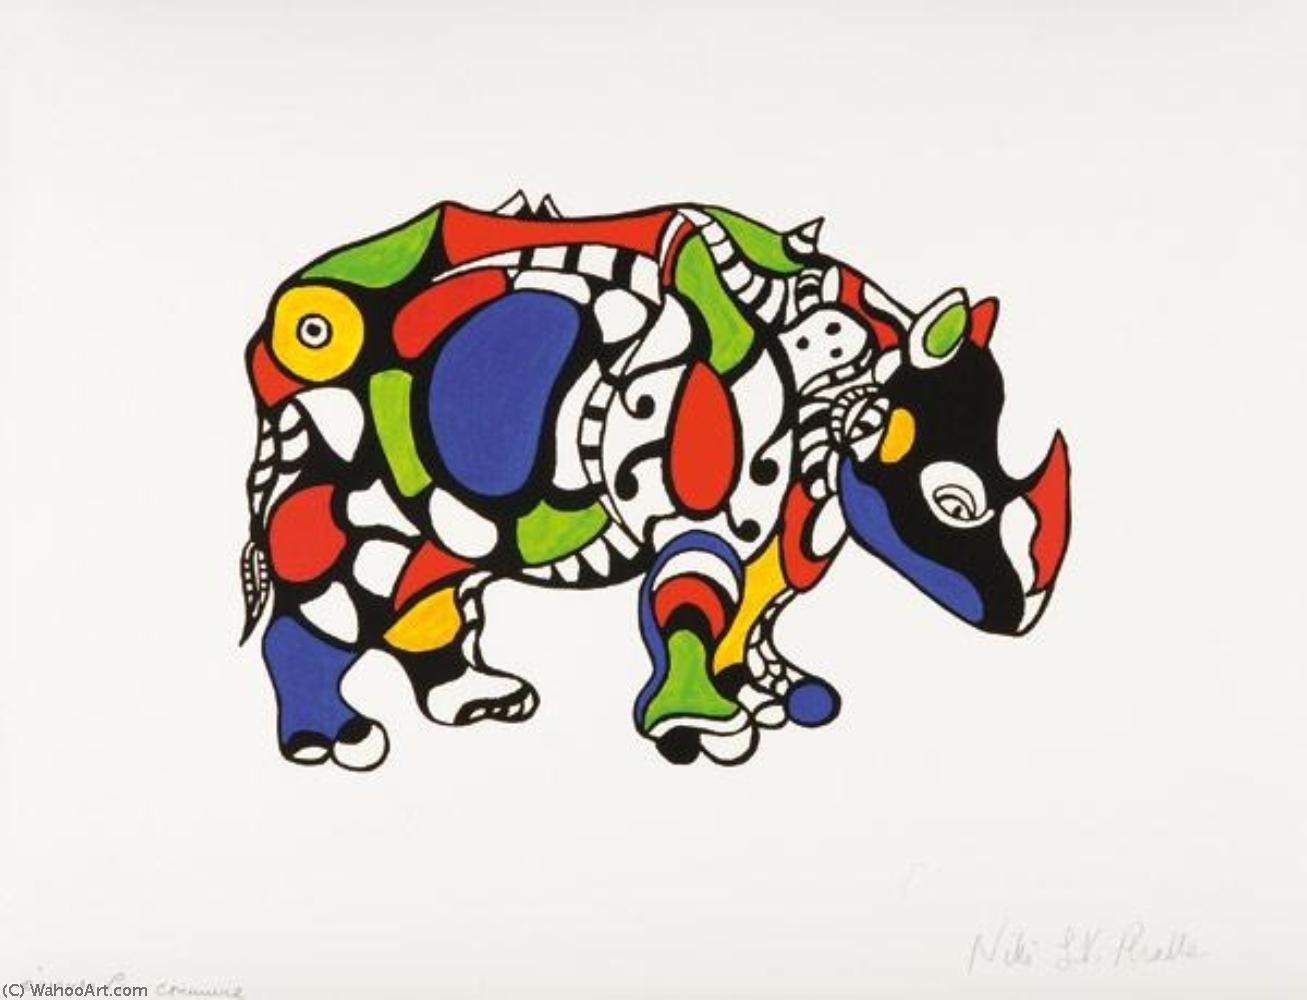 Носорог по Niki De Saint Phalle (1930-2002, France)